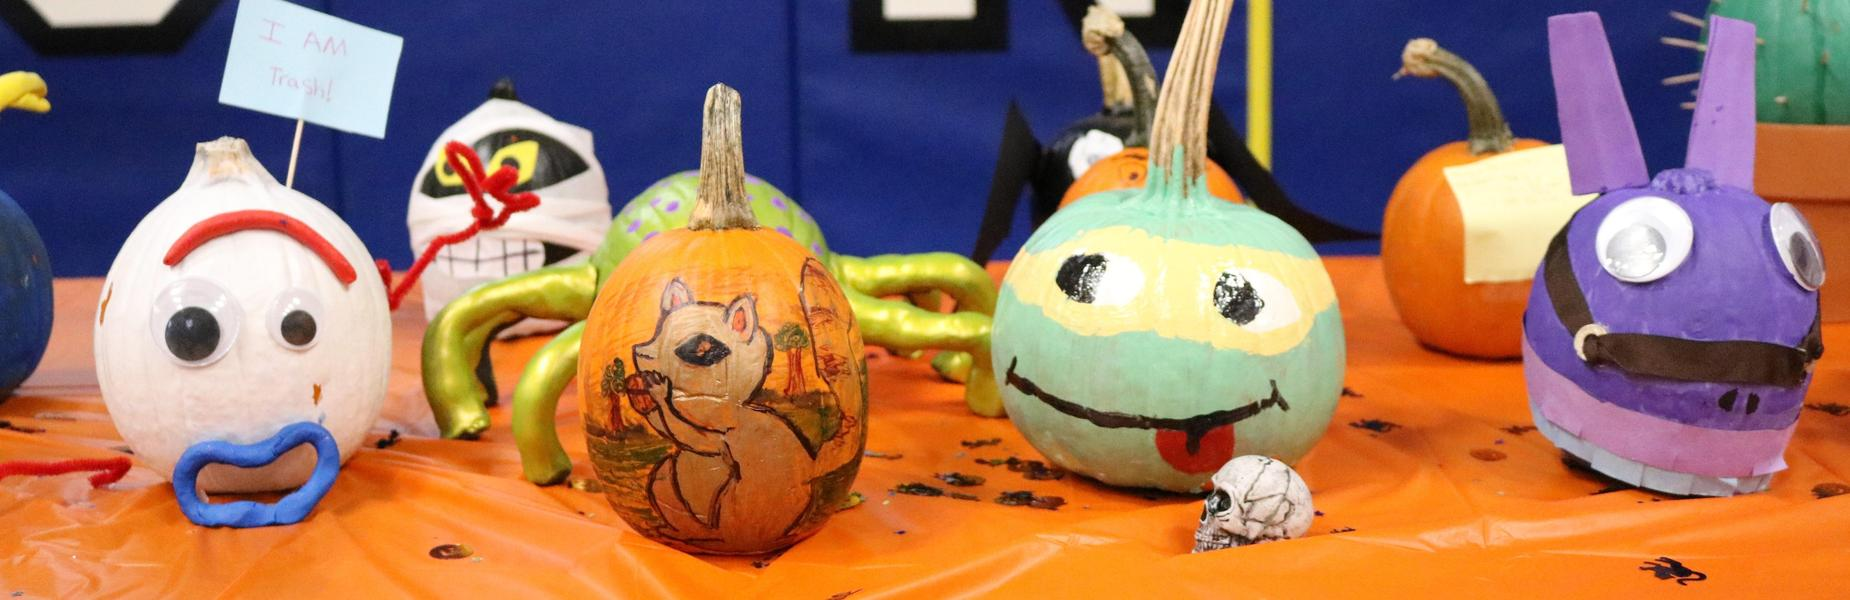 Photo of decorated pumpkins in Wilson's Pumpkin Patch